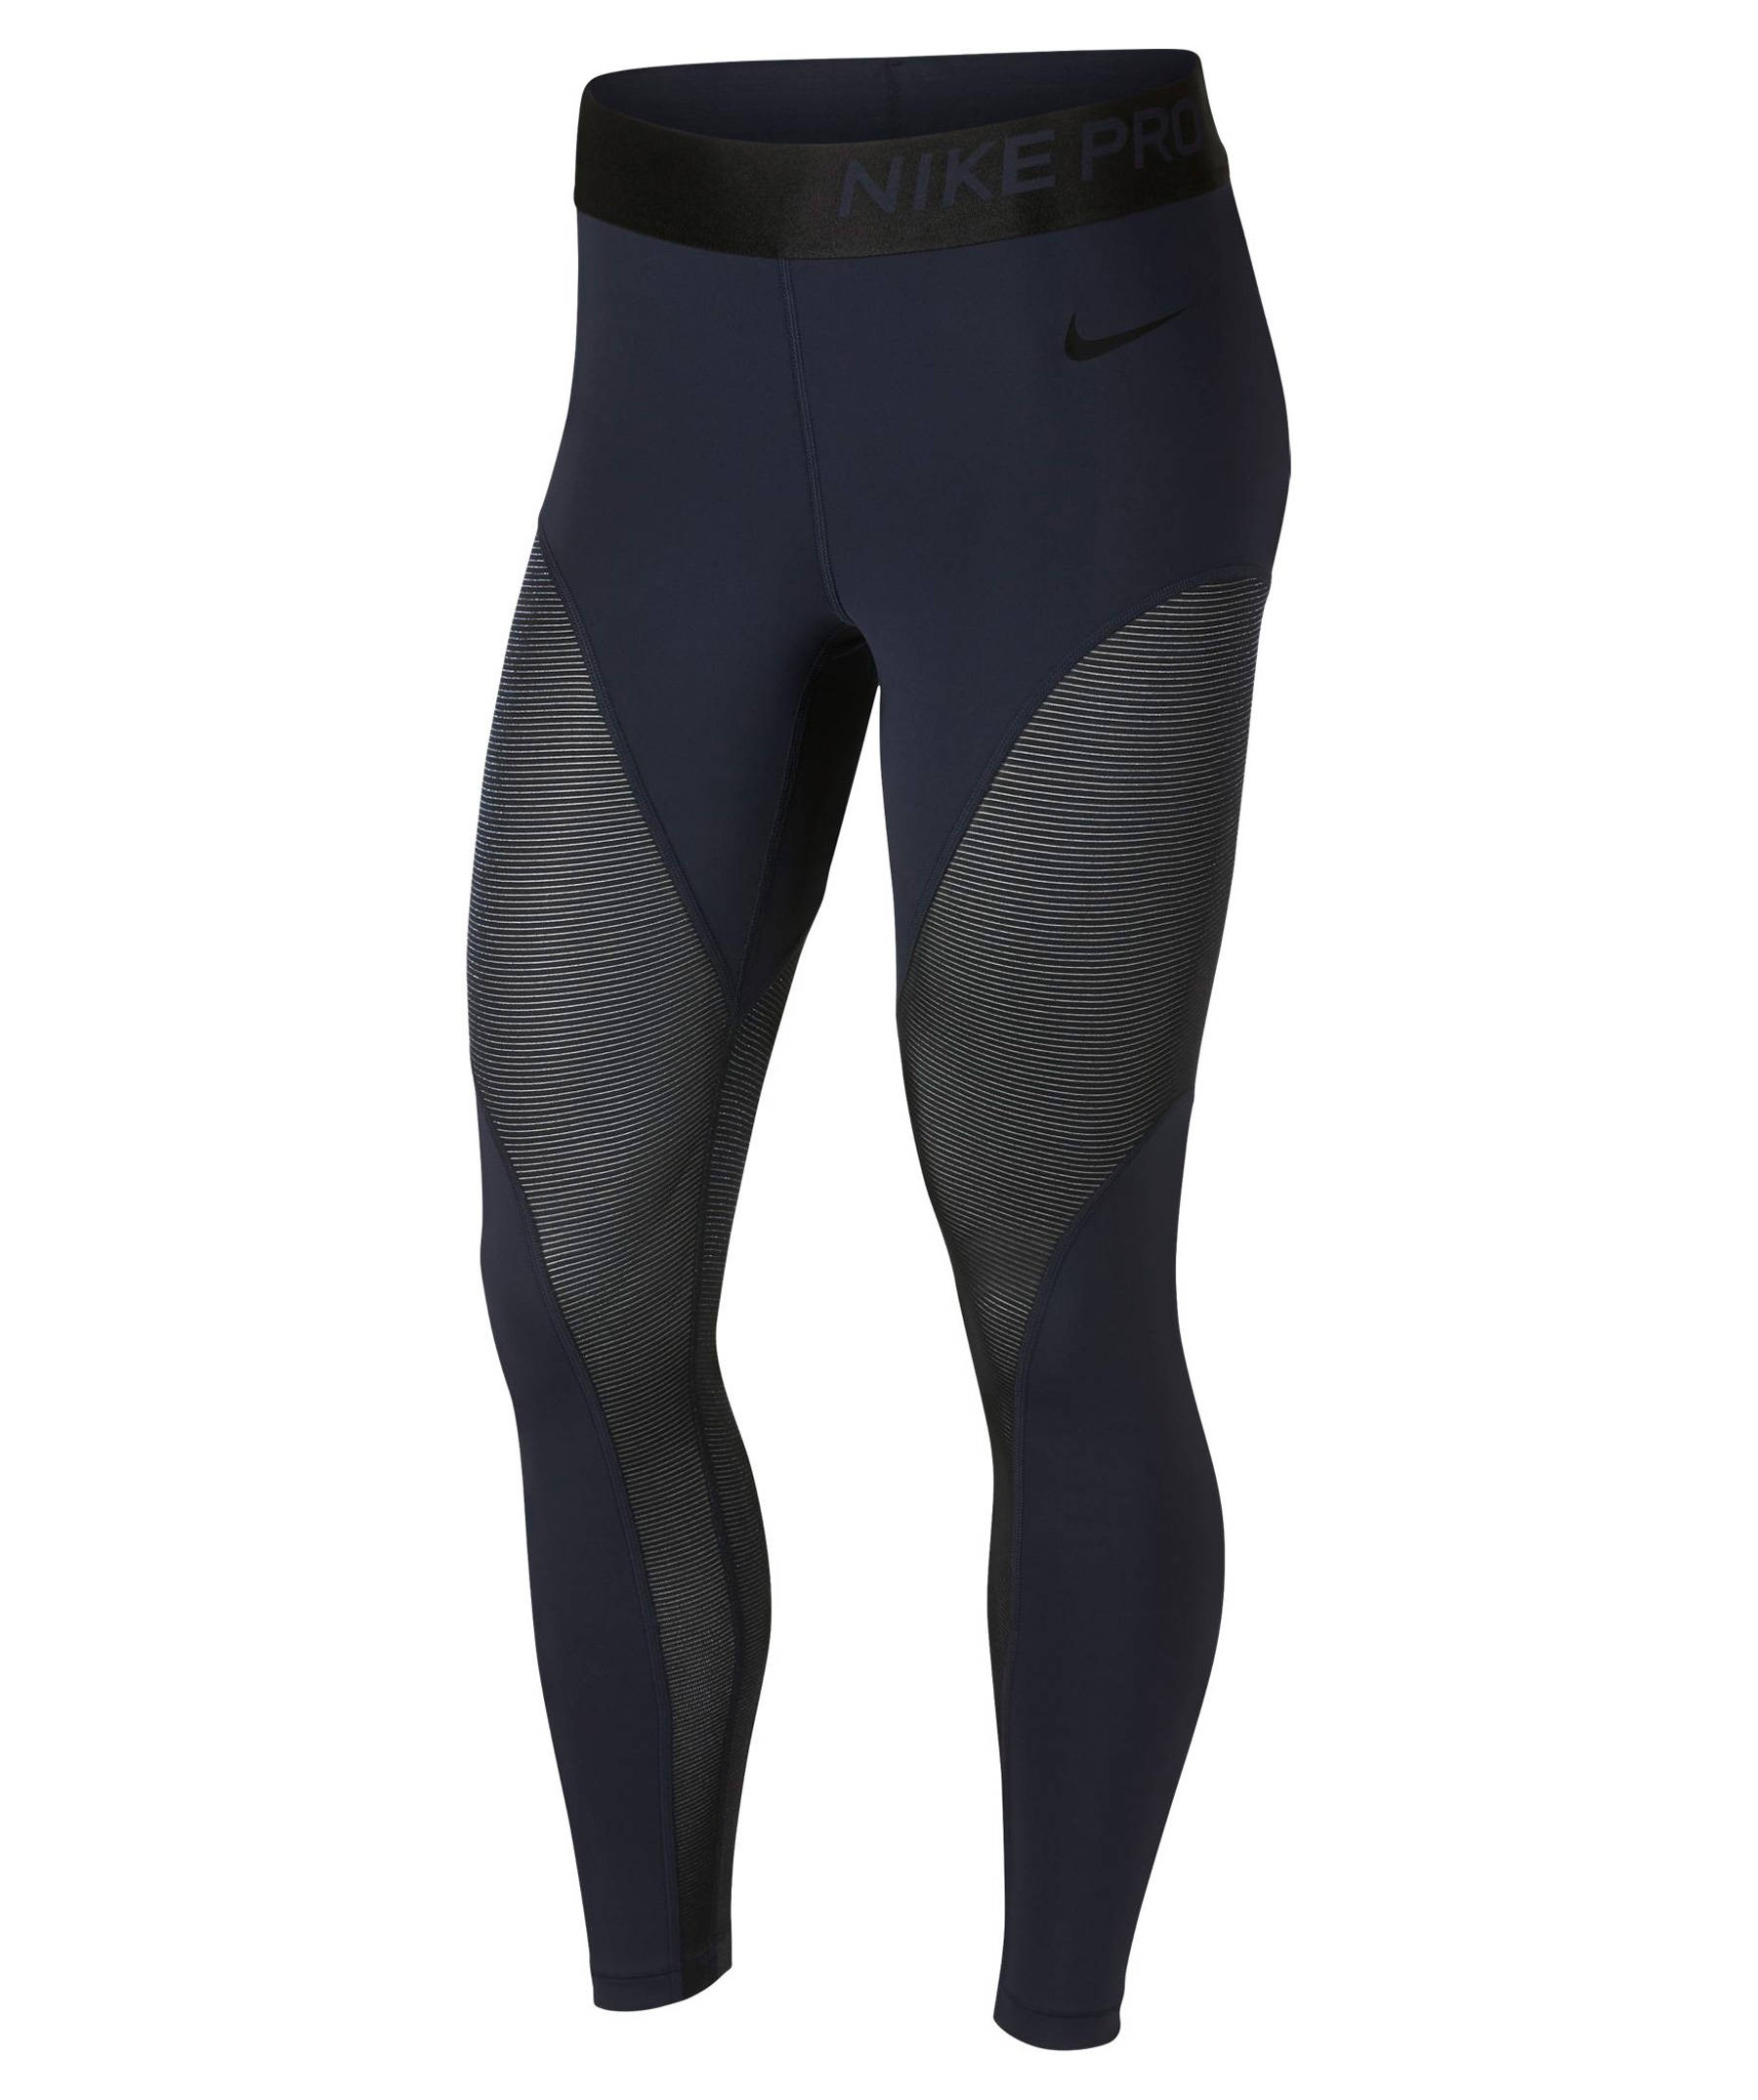 Nike Damen Tights 7/8-Länge